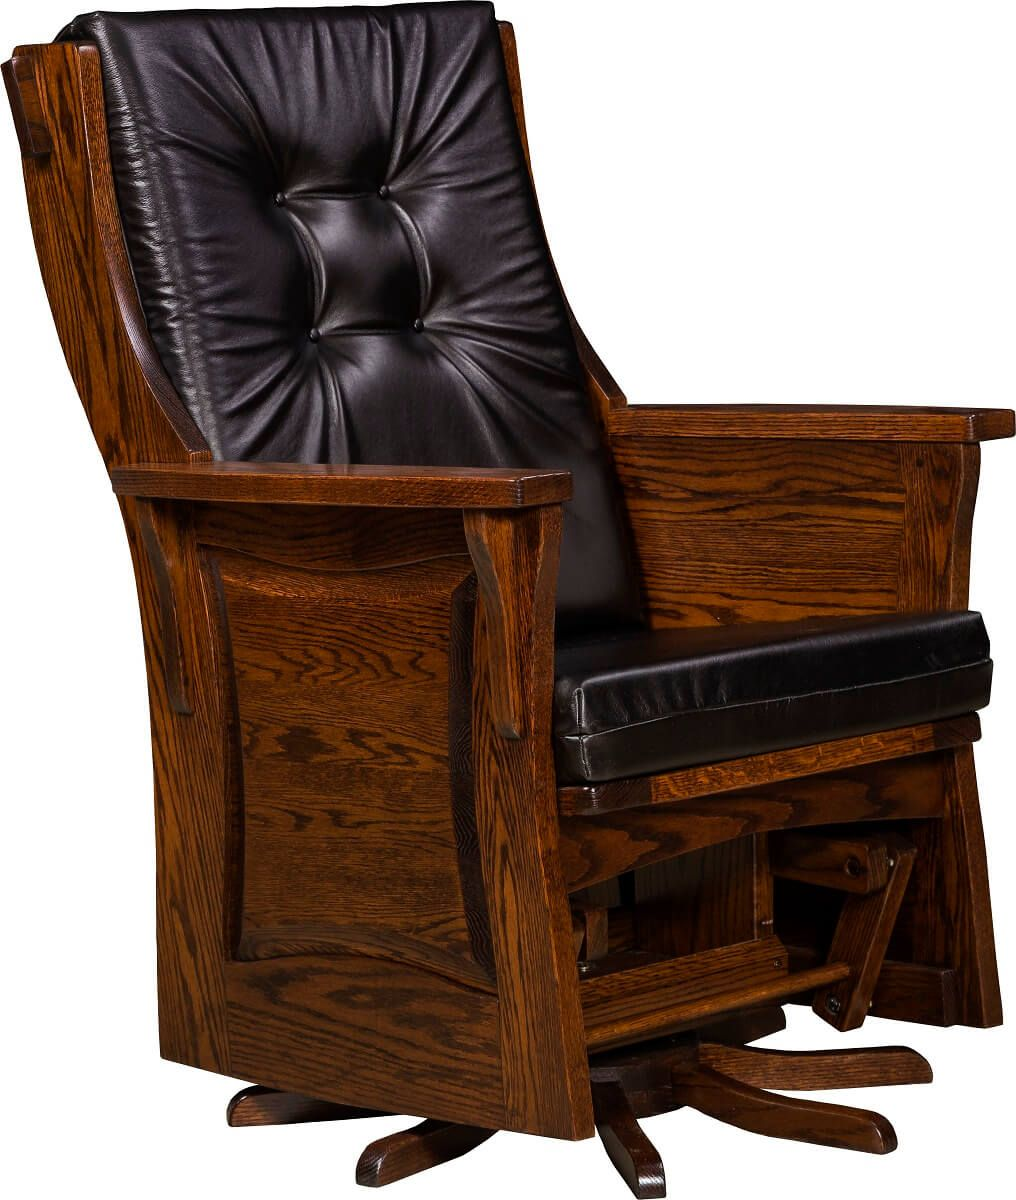 Newville Paneled Swivel Glider